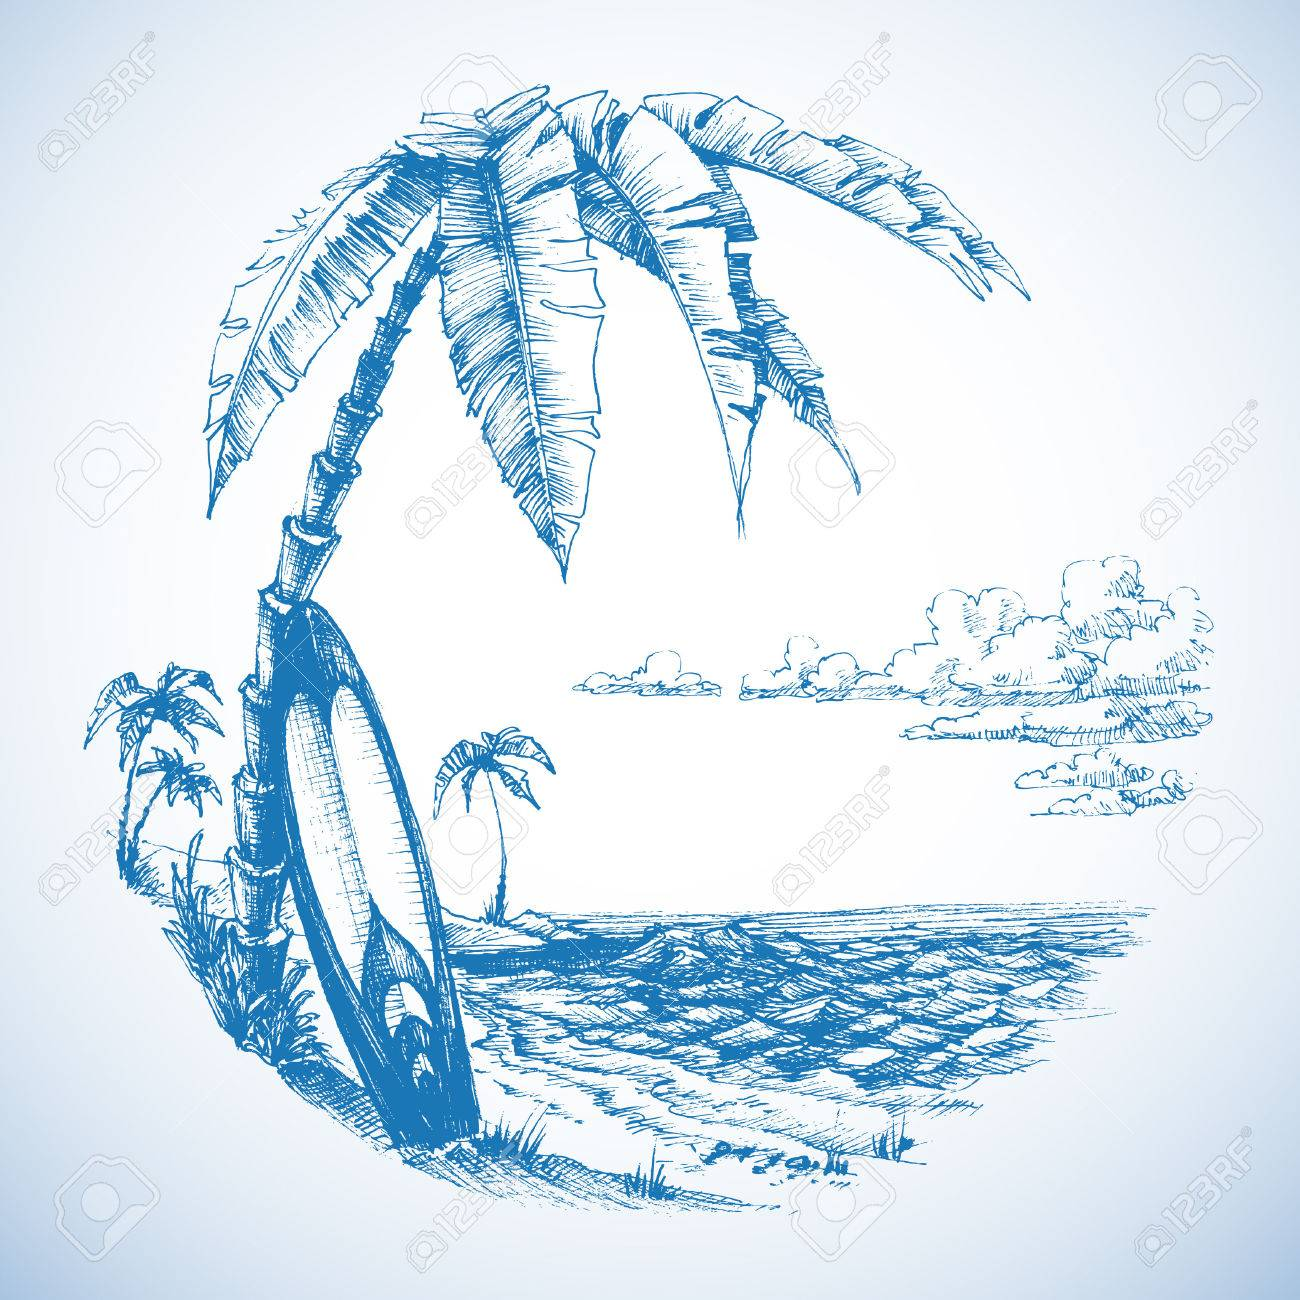 Surfing background, palm trees and sea view - 40929172